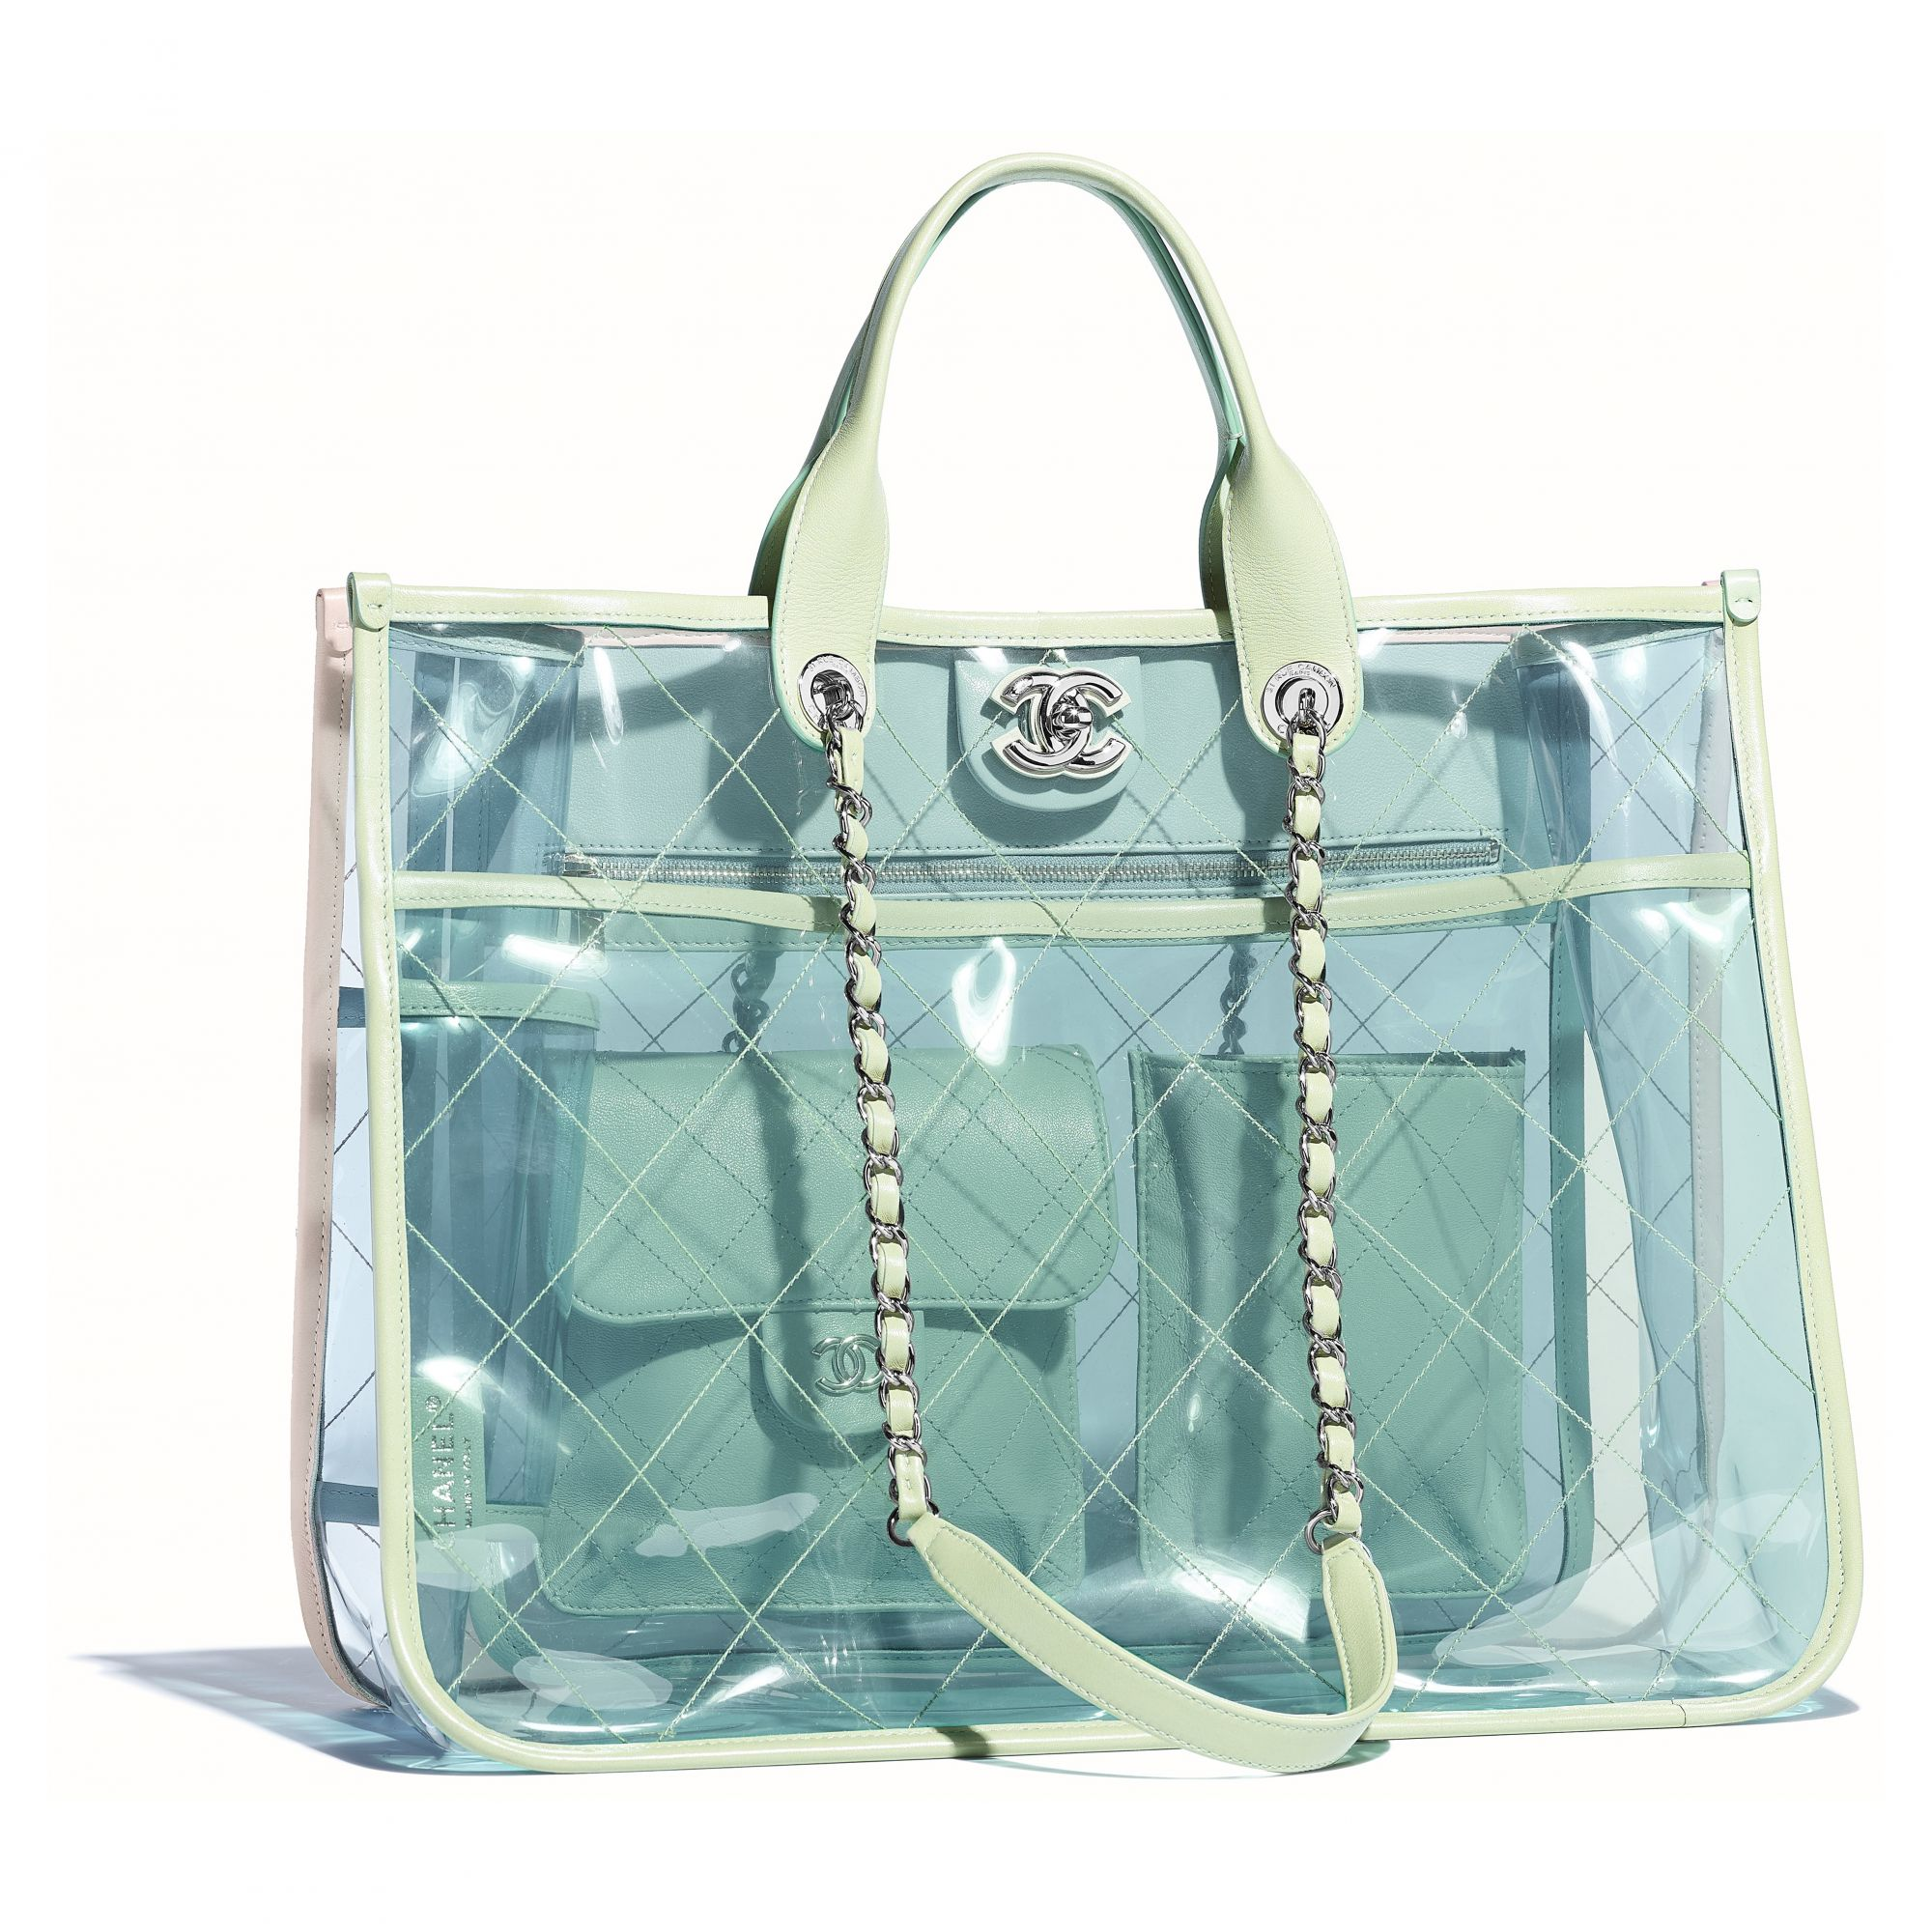 Multicoloured shopper bag in PVC and leather